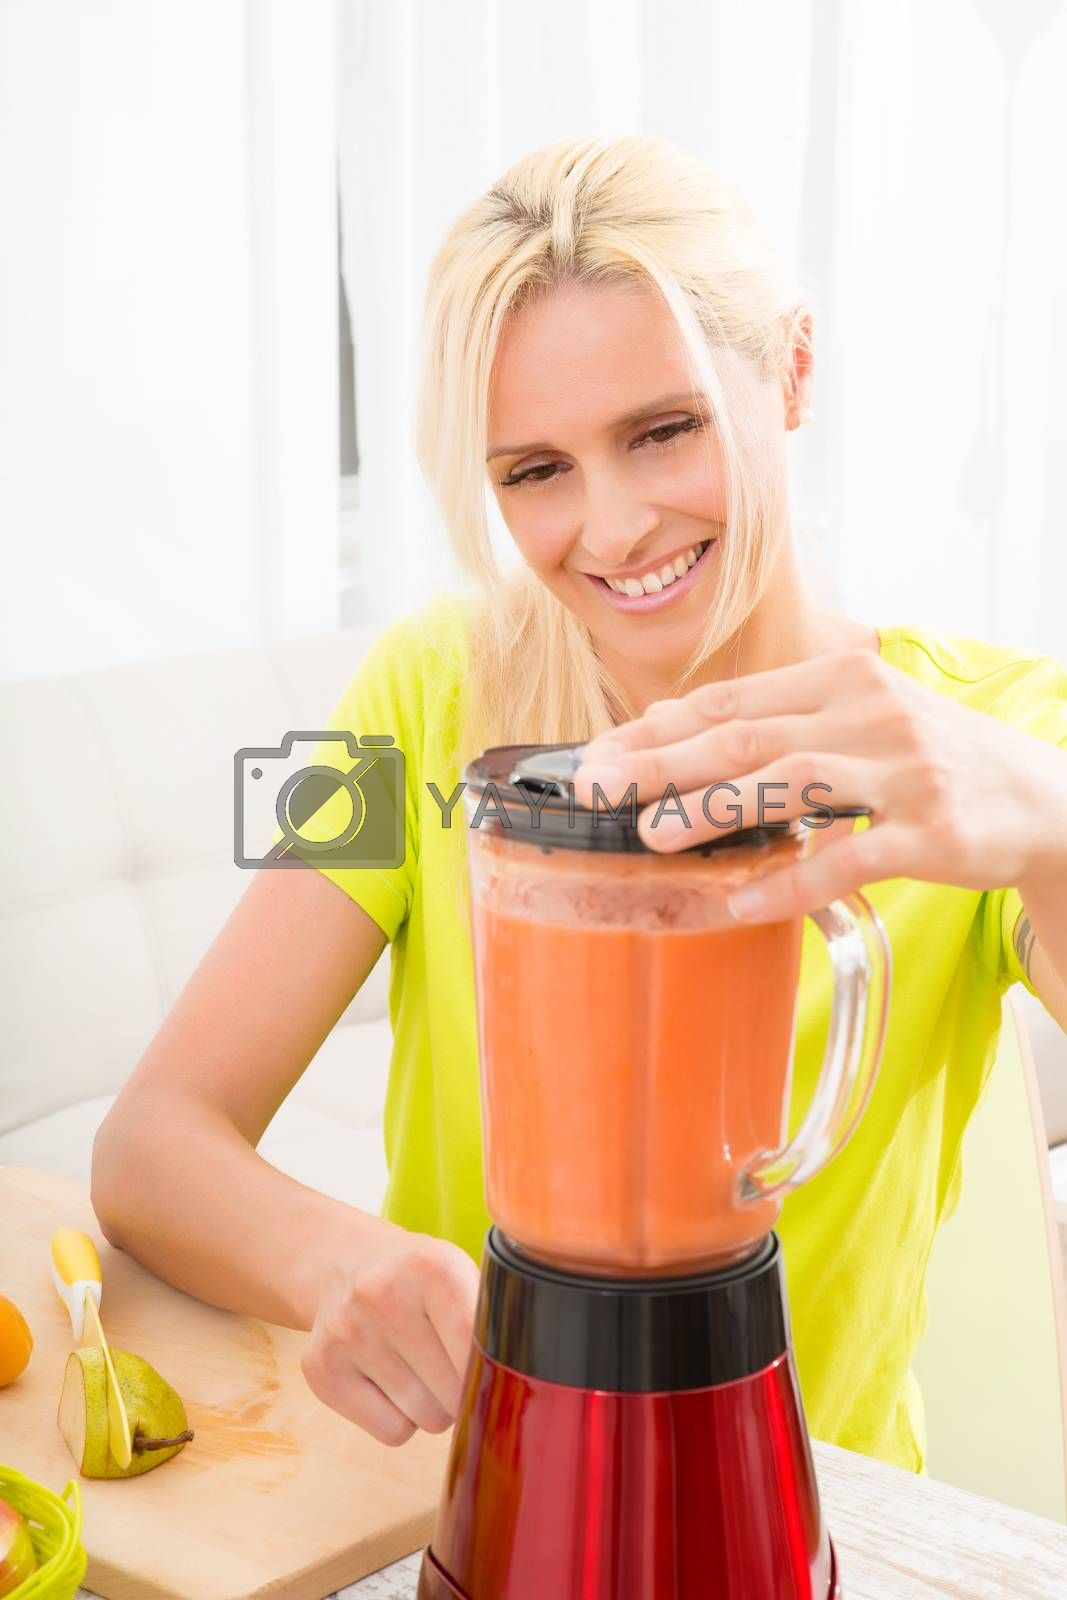 Mature woman blending a smoothie by Spectral